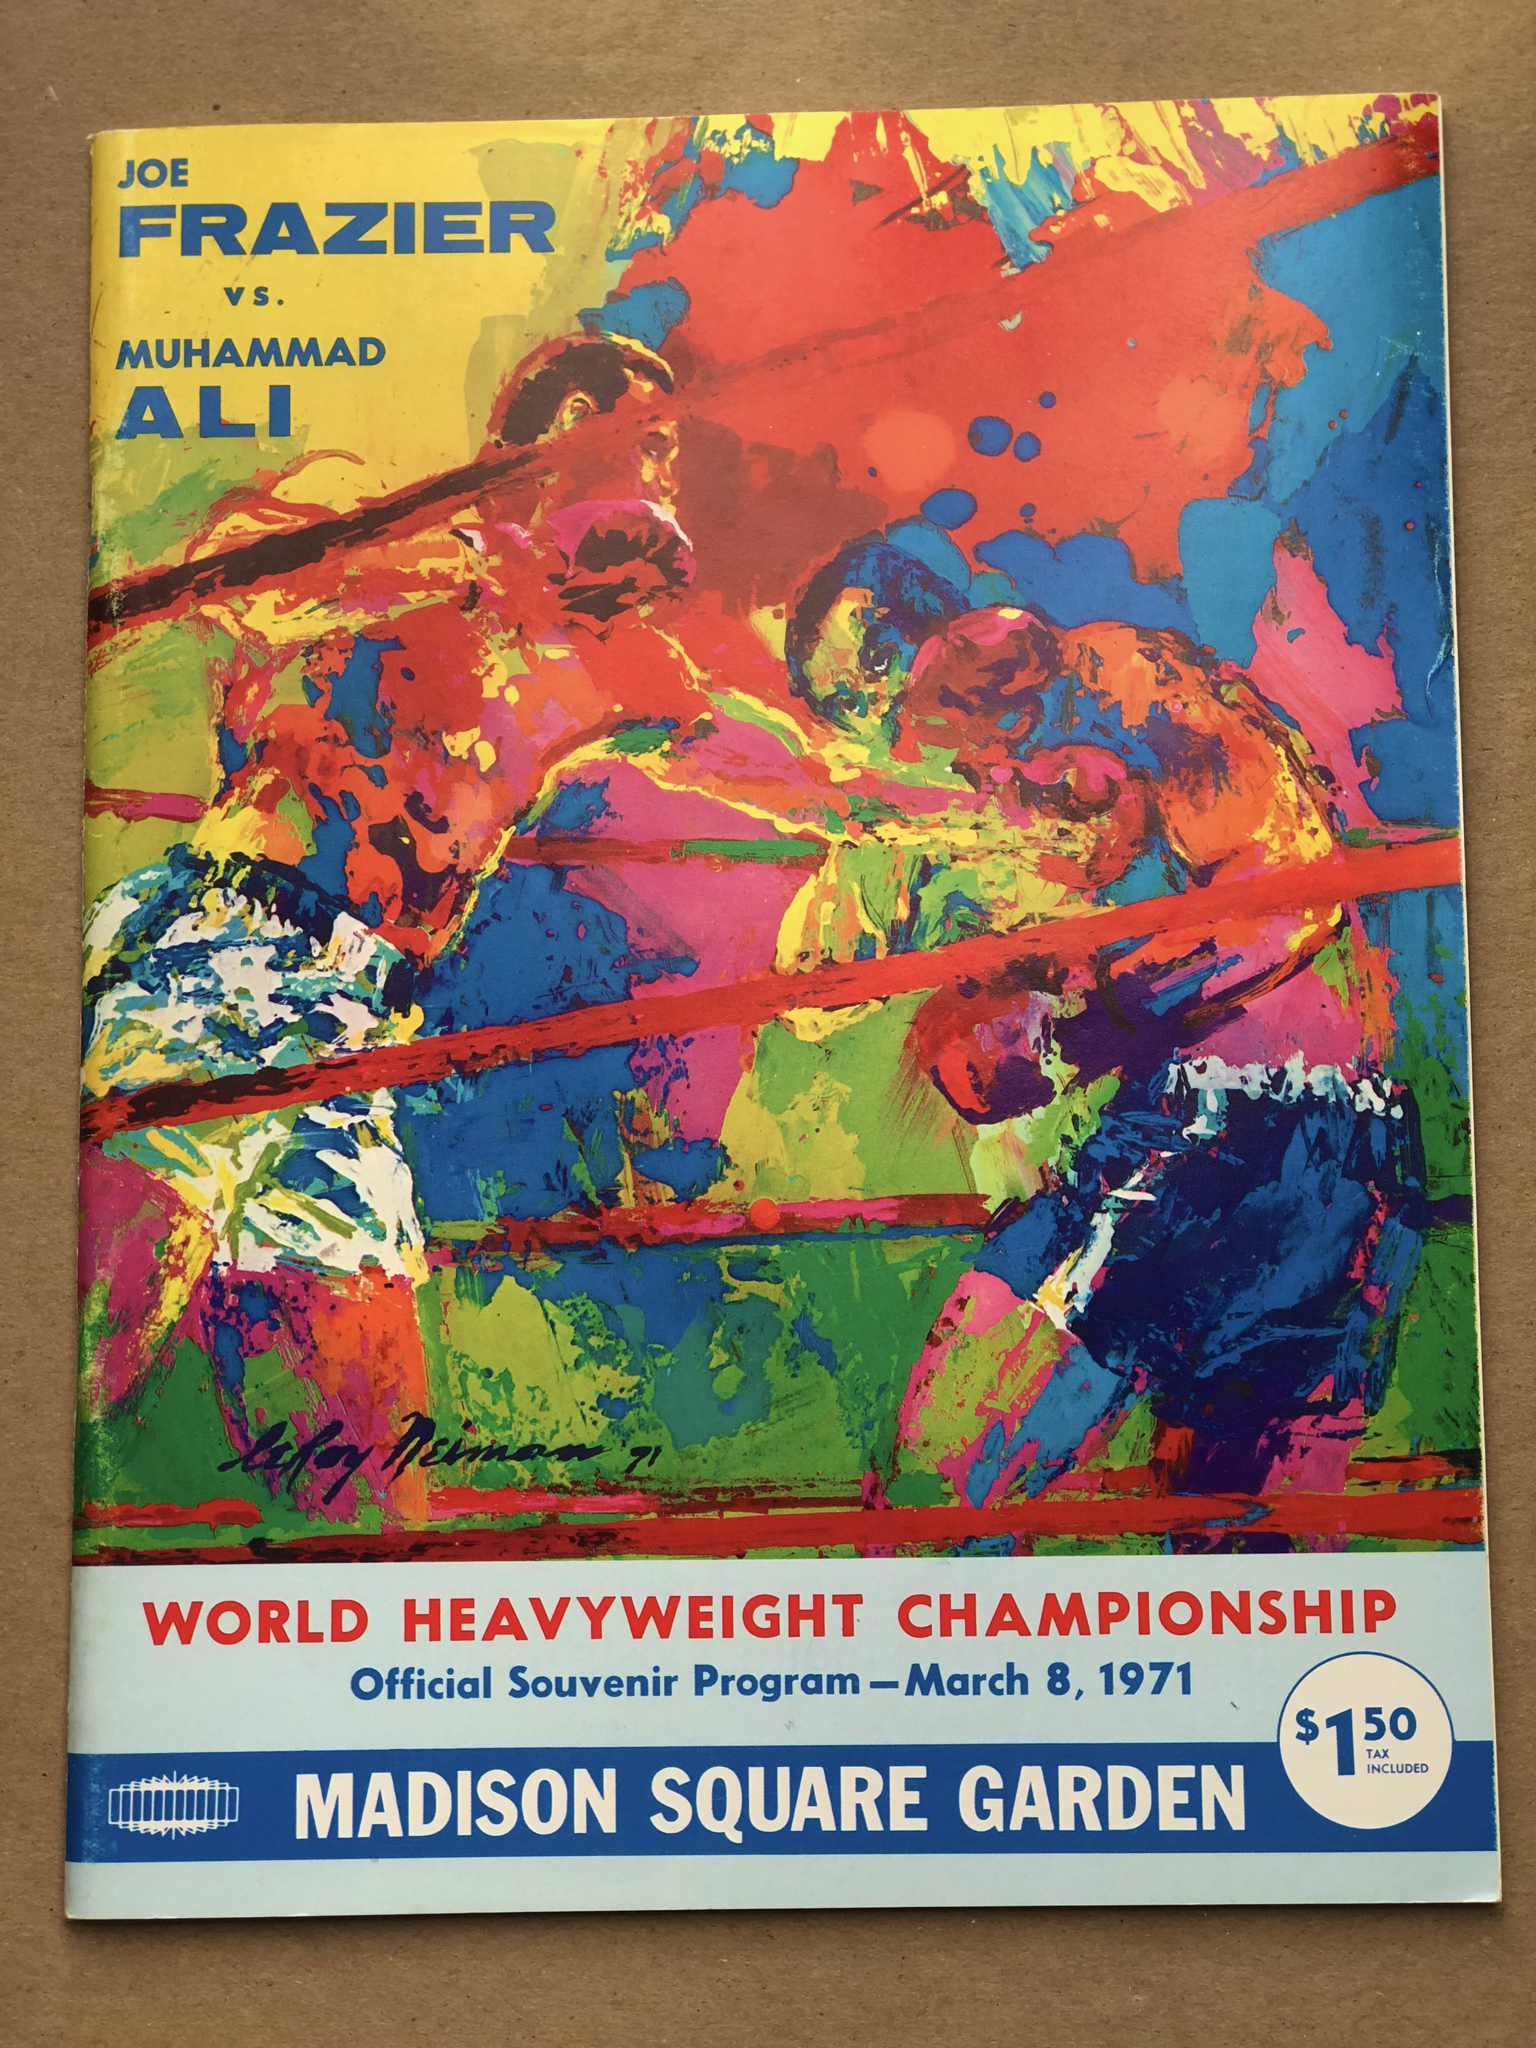 1971 Official Souvenir Program Frazier vs Ali